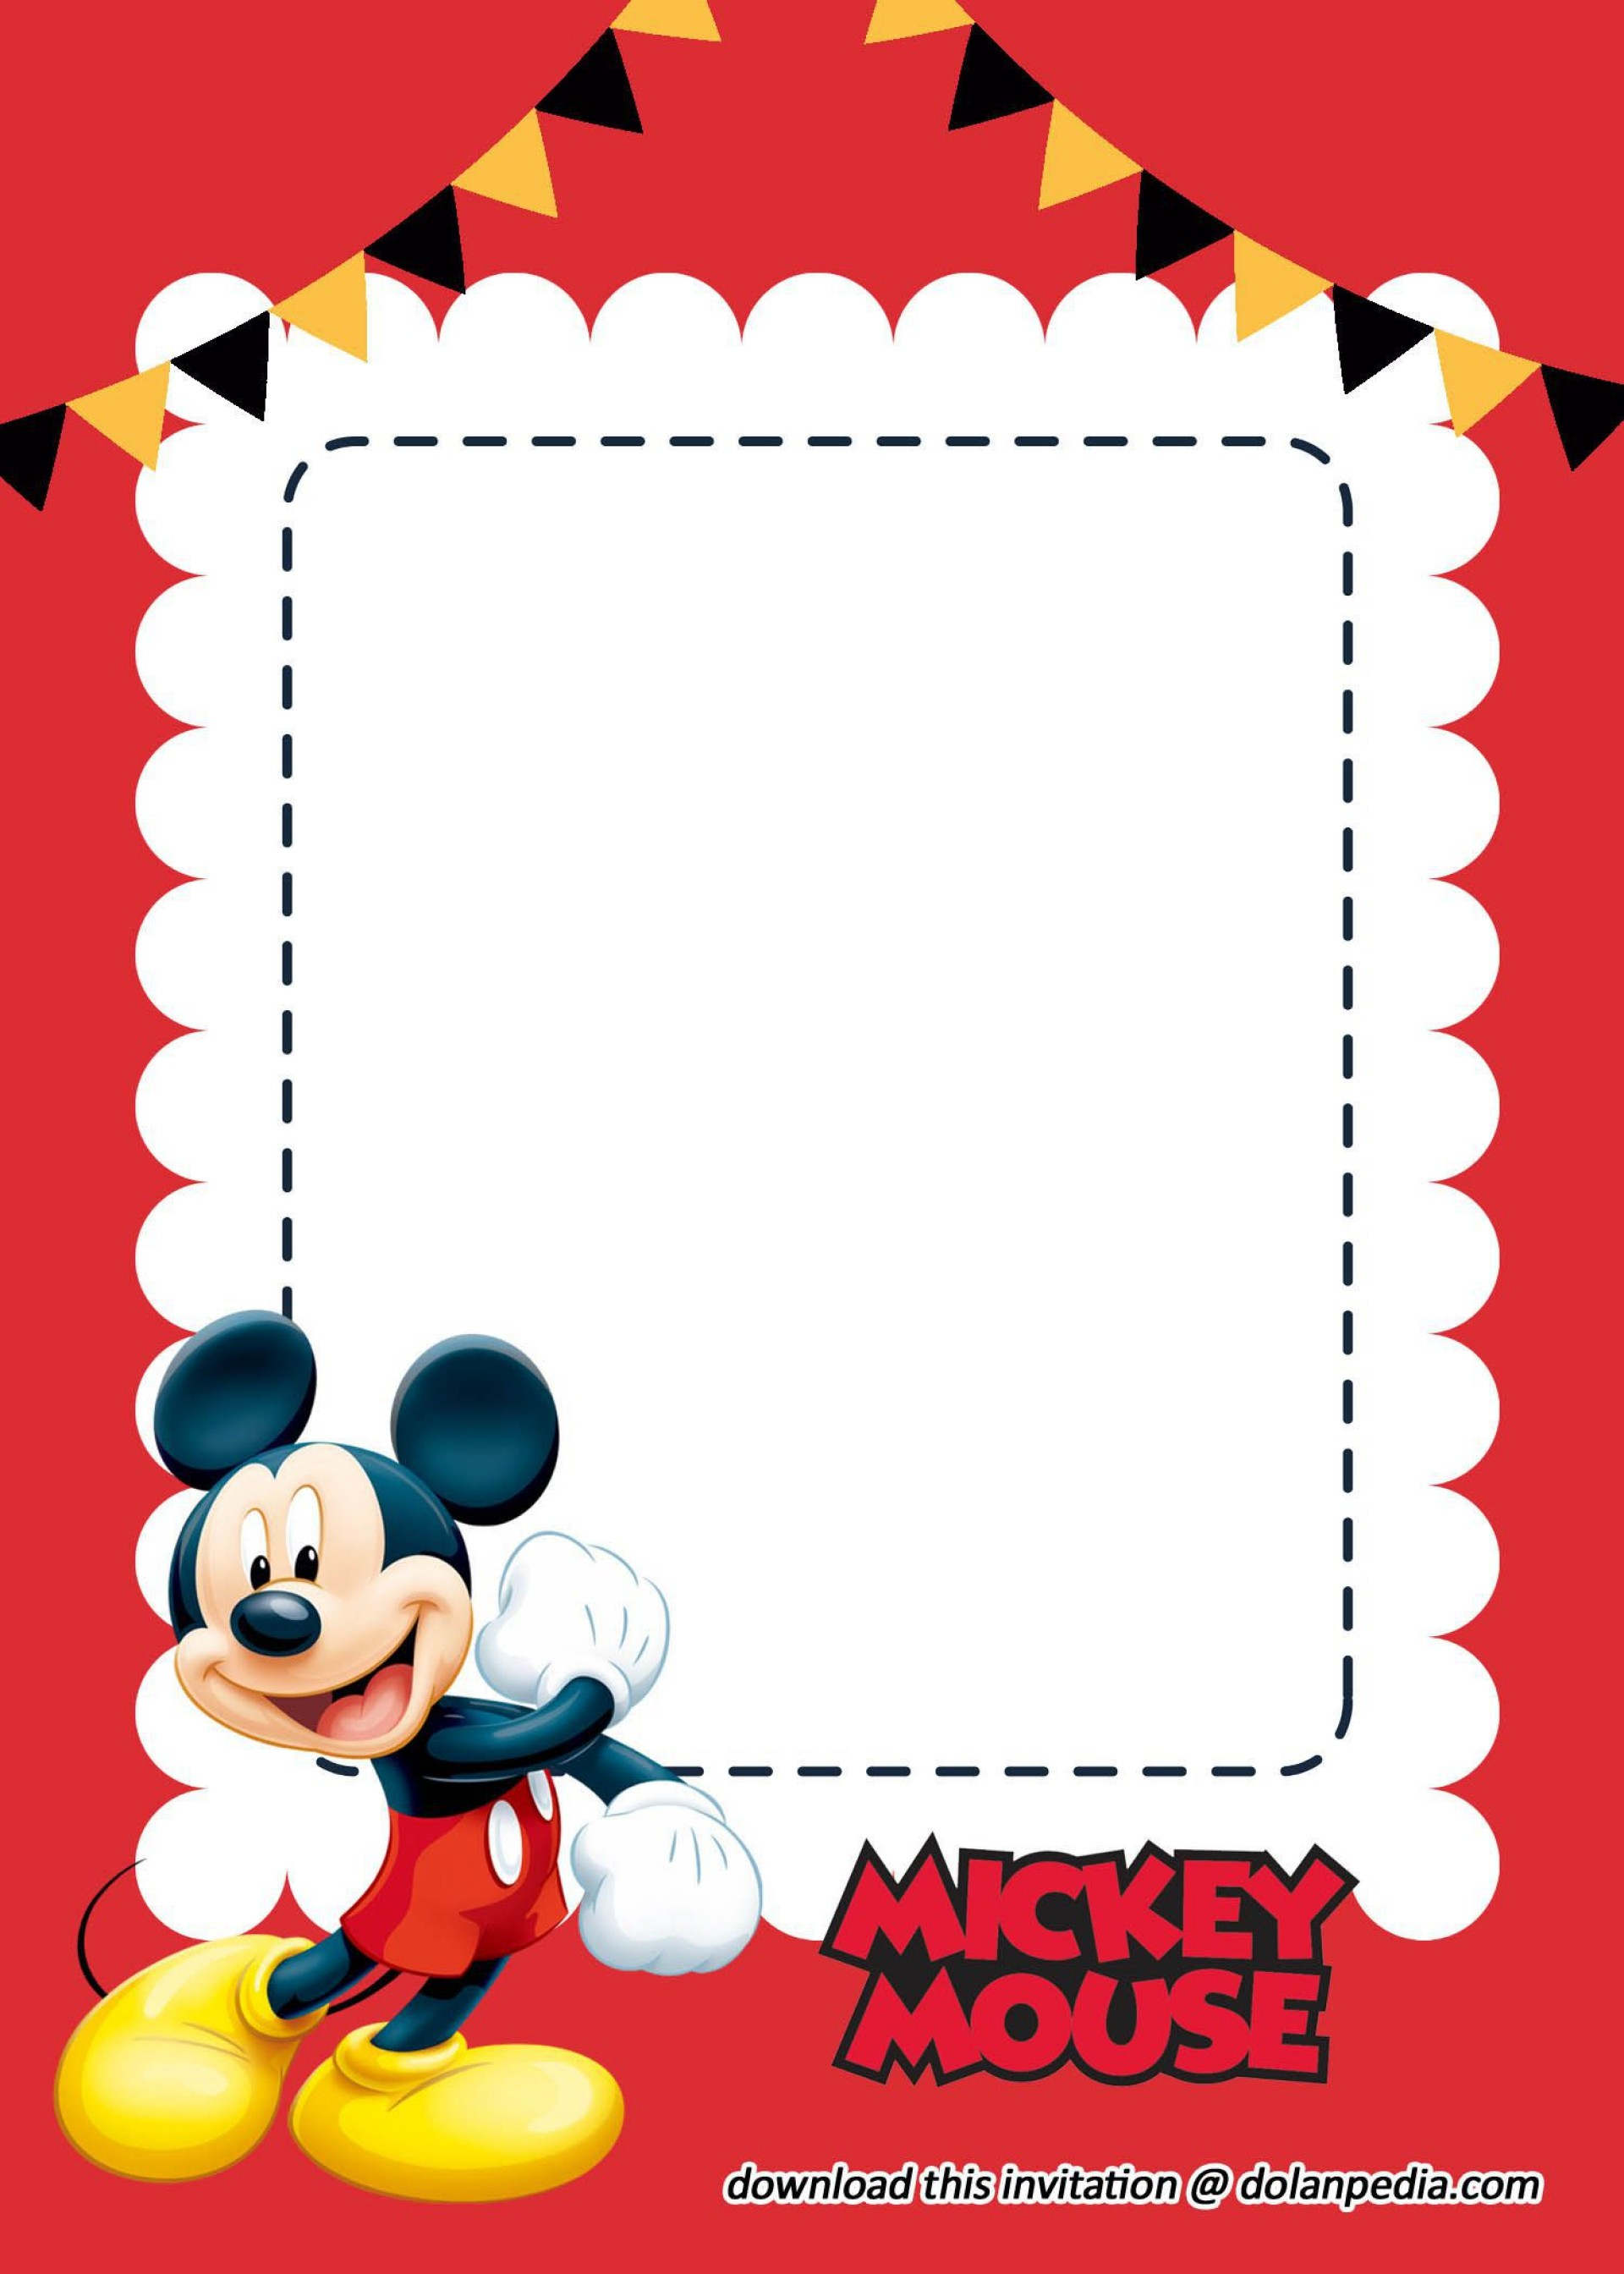 003 Awful Mickey Mouse Invitation Template Highest Clarity  Free Diy 1st Birthday Baby Download1920